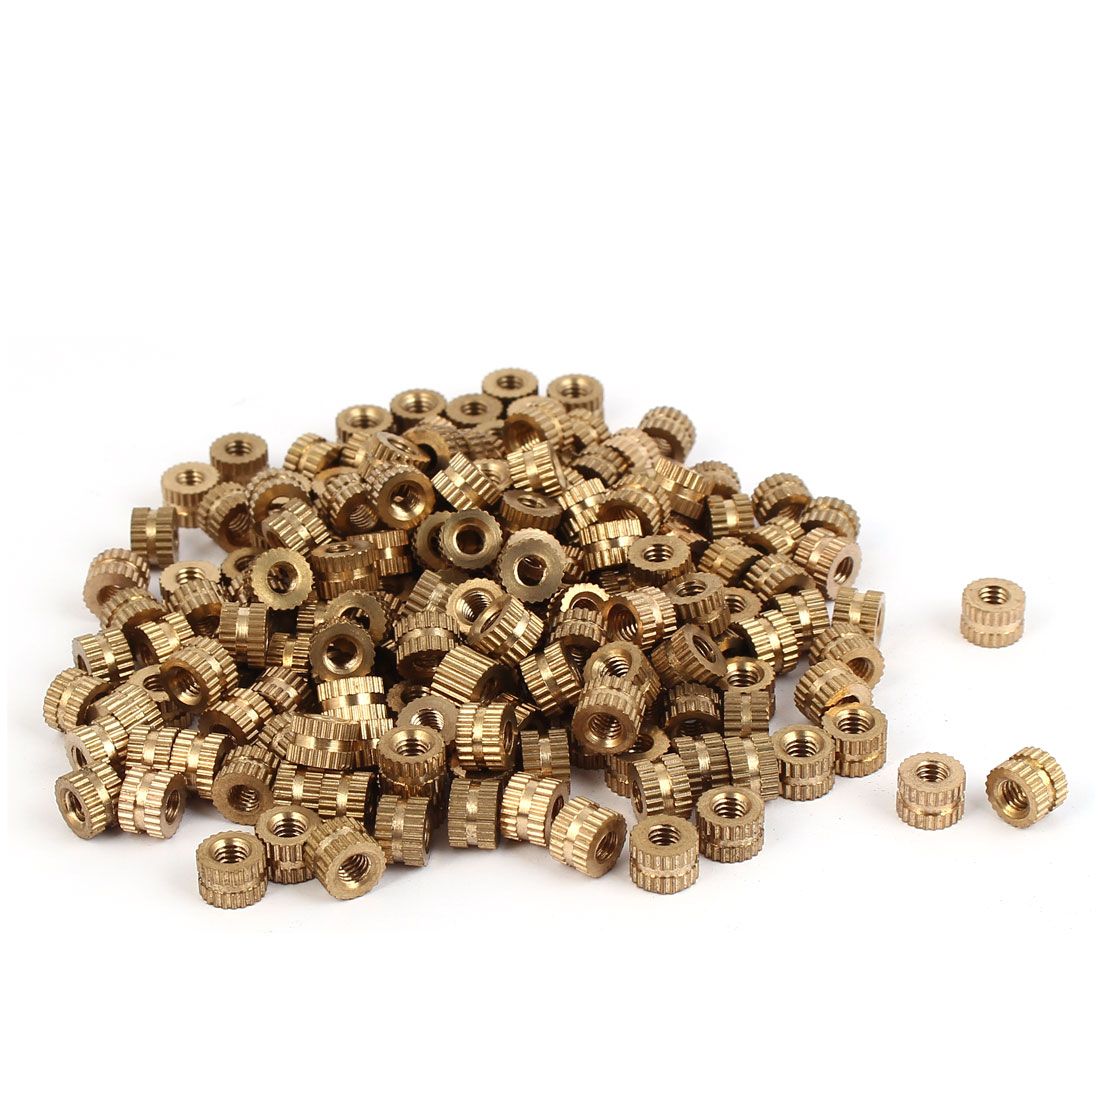 M4 x 5mm 0.7mm Pitch Brass Cylinder Knurled Threaded Embedment Nuts 200PCS